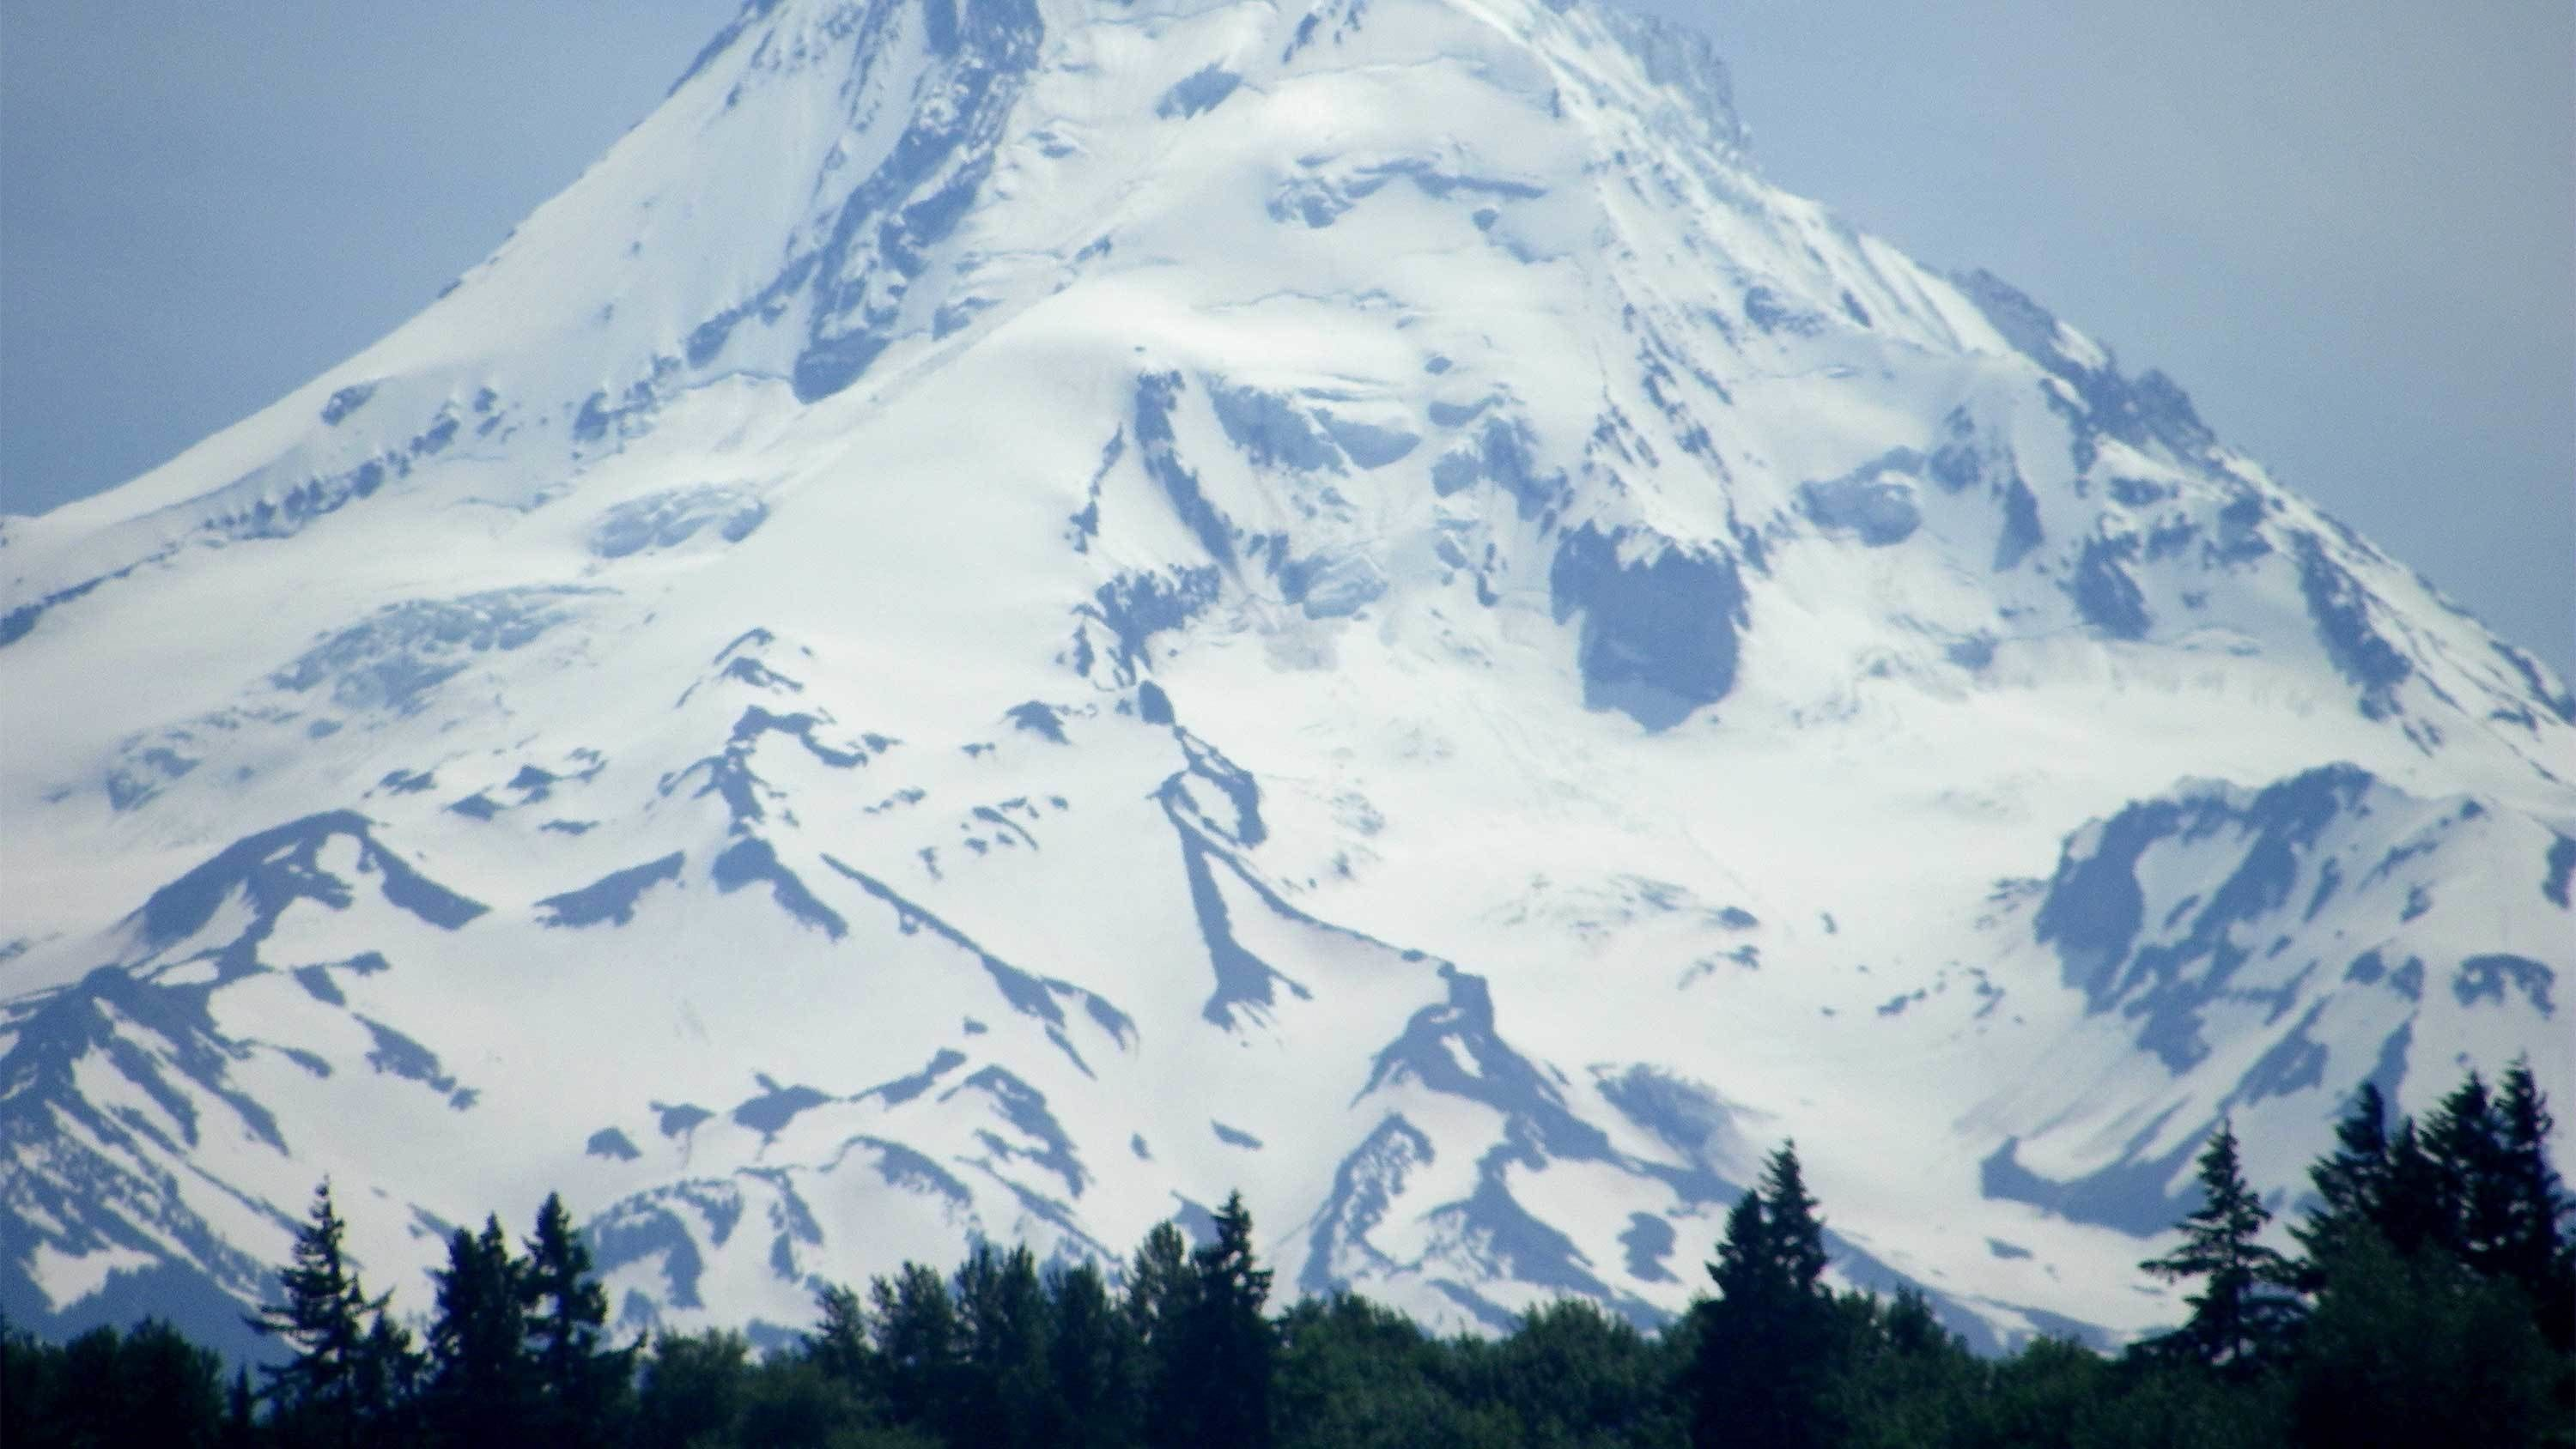 View of Mt. Hood